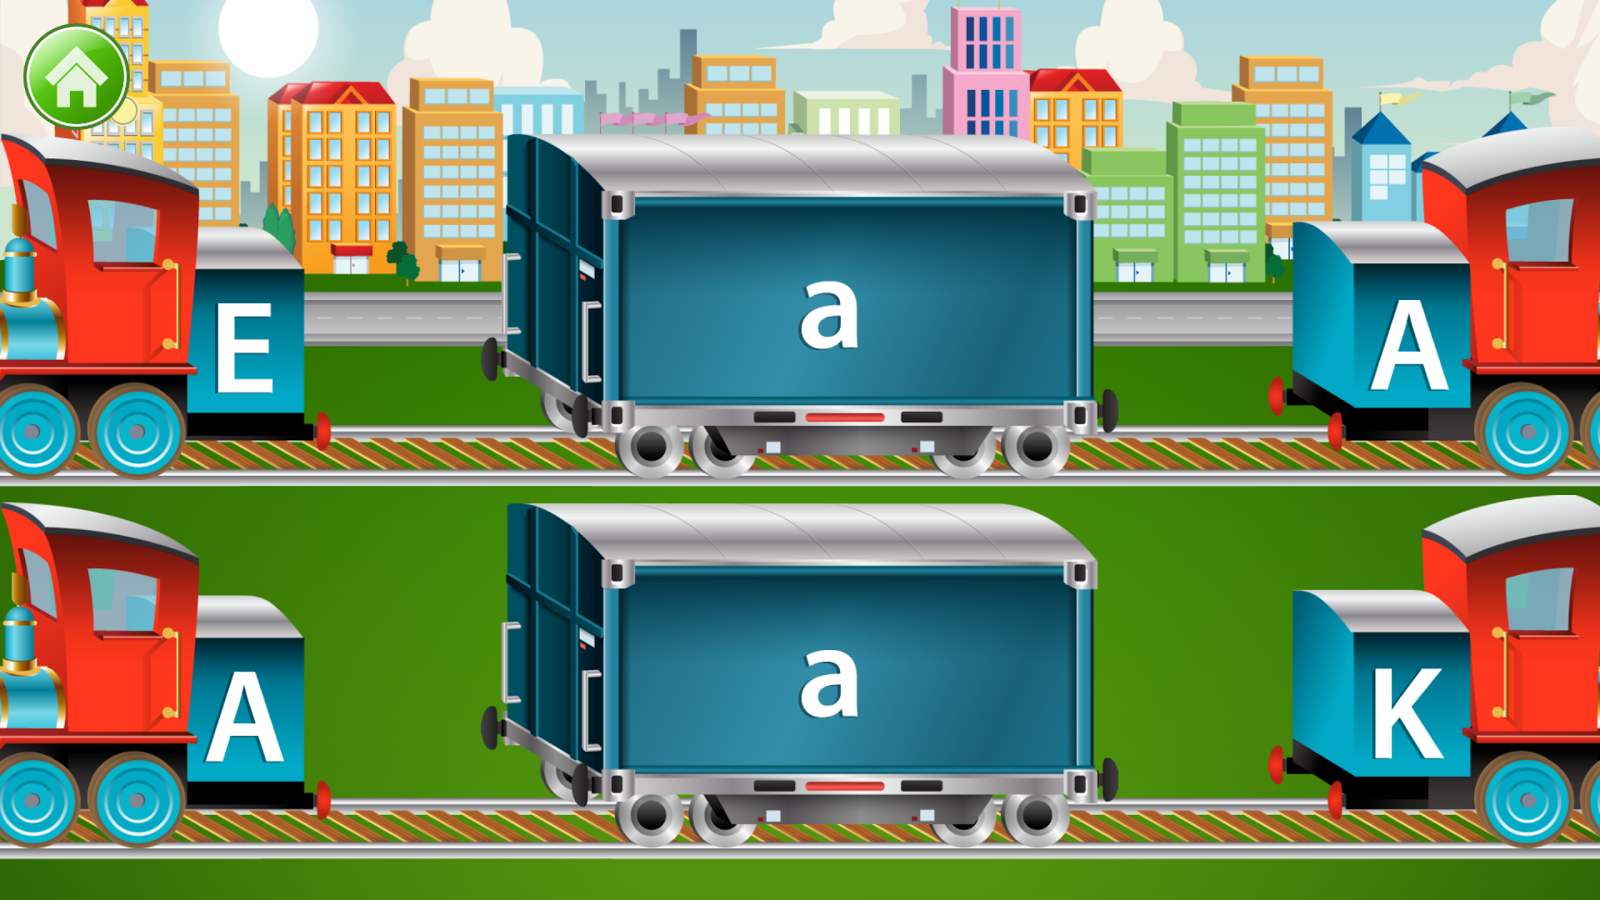 Learn Letter Names and Sounds with ABC Trains 1.8.7 APK Download ...